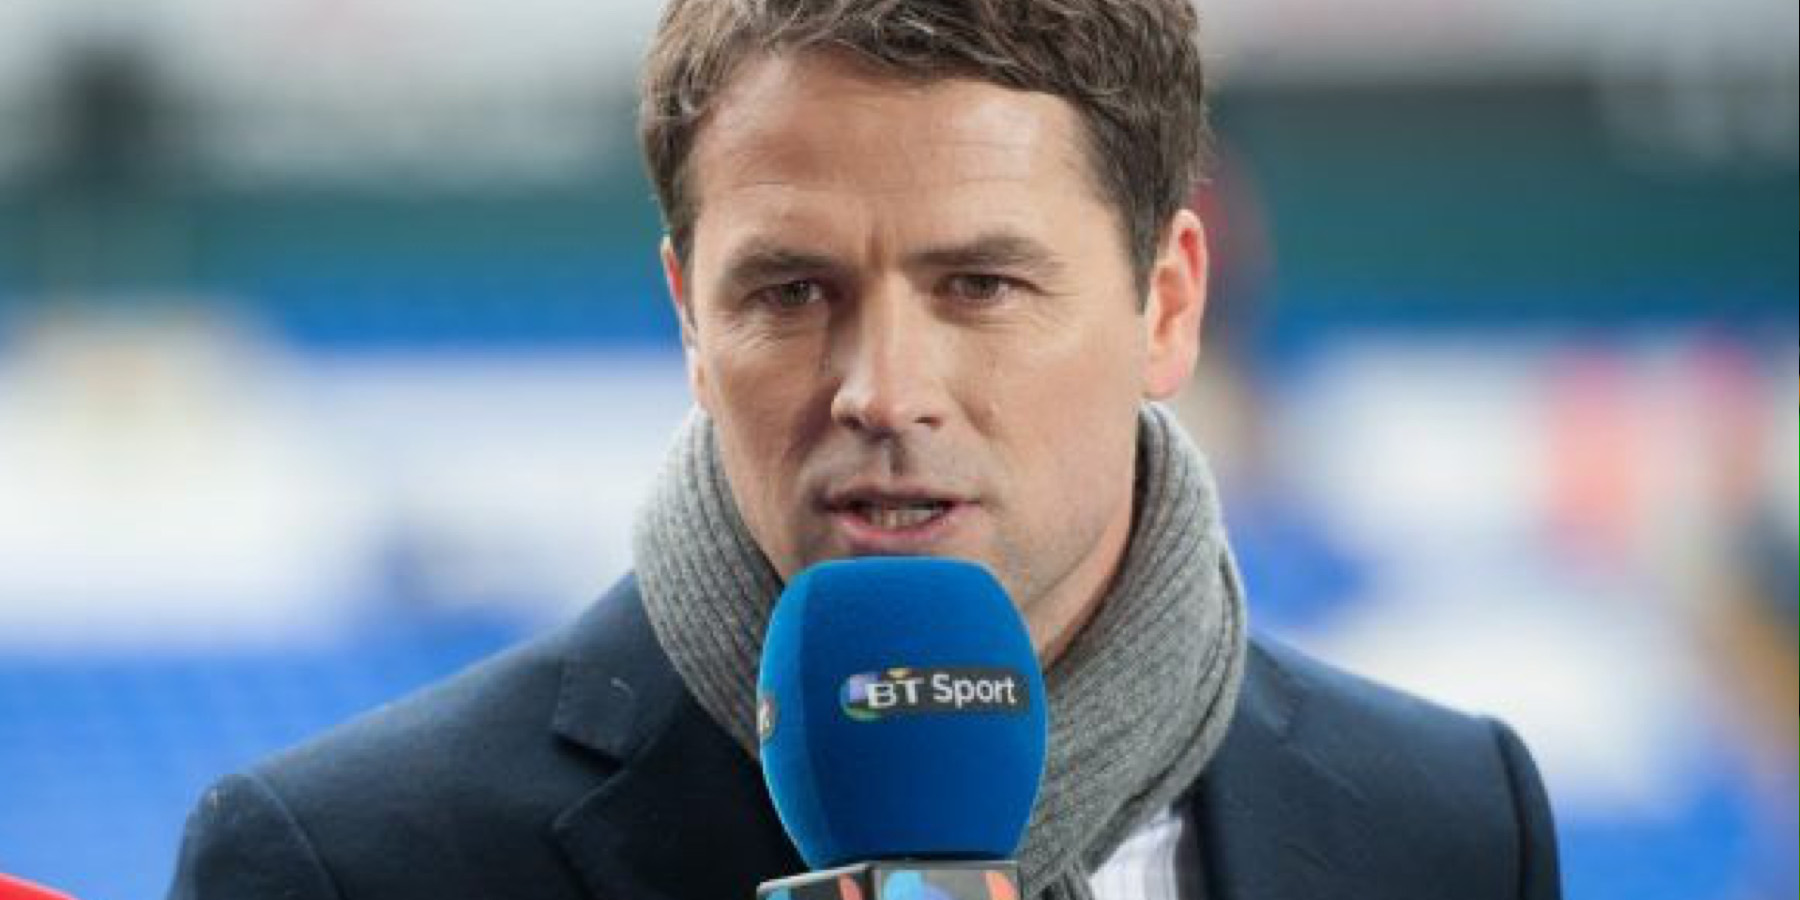 Michael Owen's Top 10 Commentary One-Liners